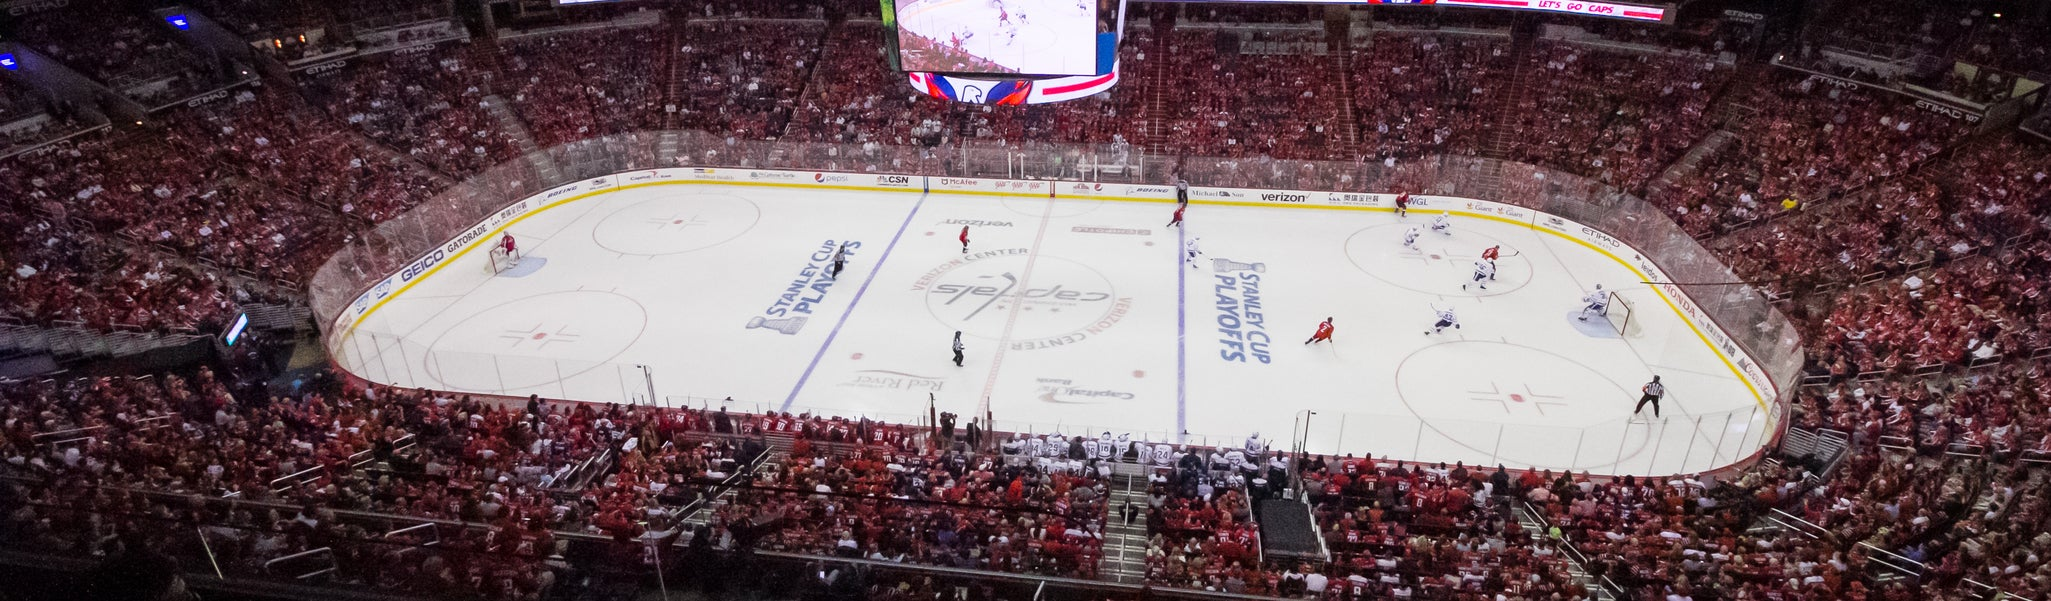 Seat view from Mezzanine Center 401 at Capital One Arena